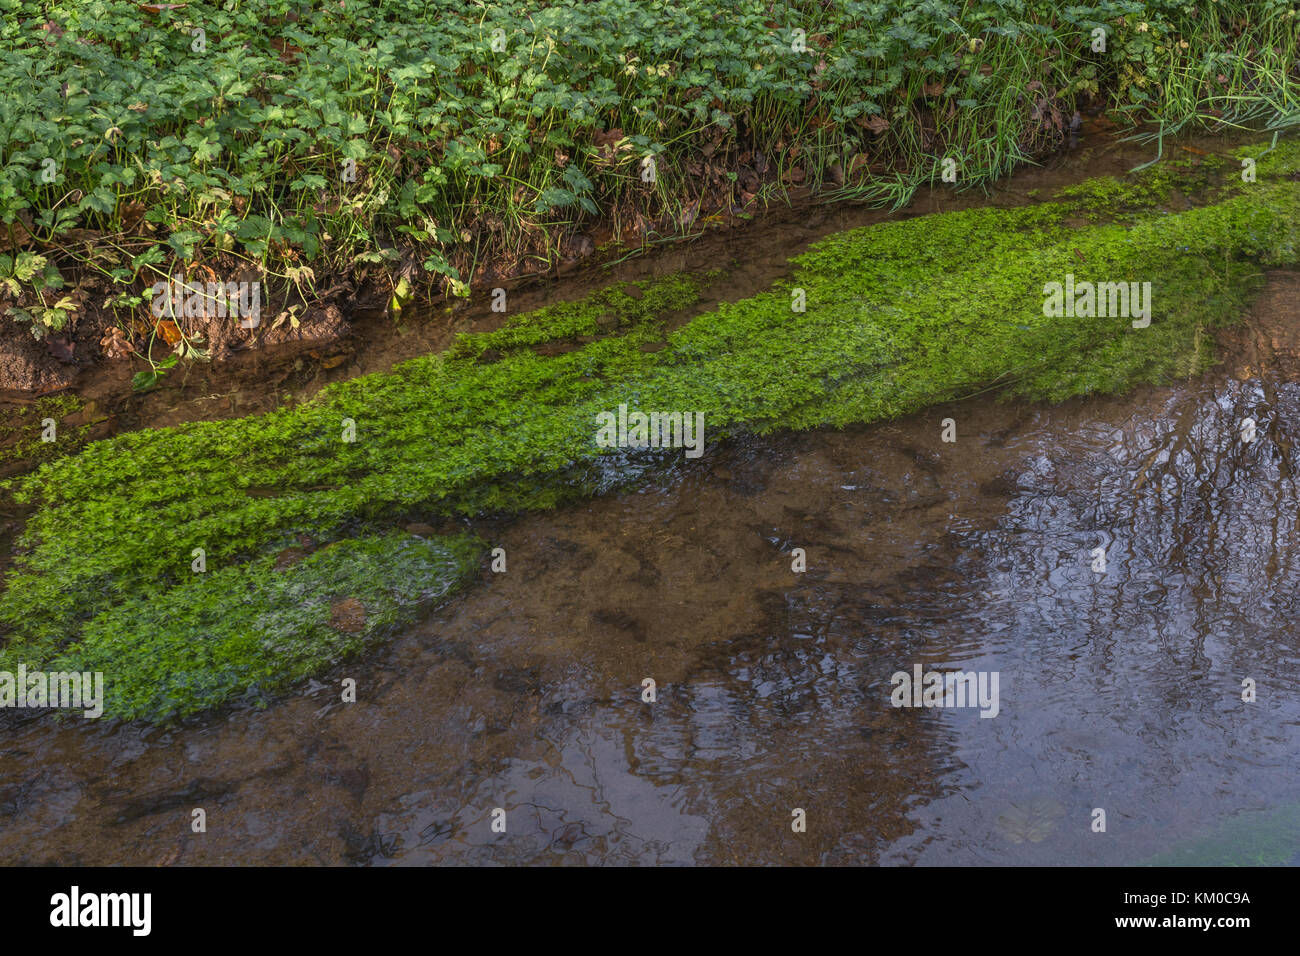 Water Starwort (Callitriche agg. - probably C. hamulata) in large, flowing, rivulet - see additional botanical notes - Stock Image